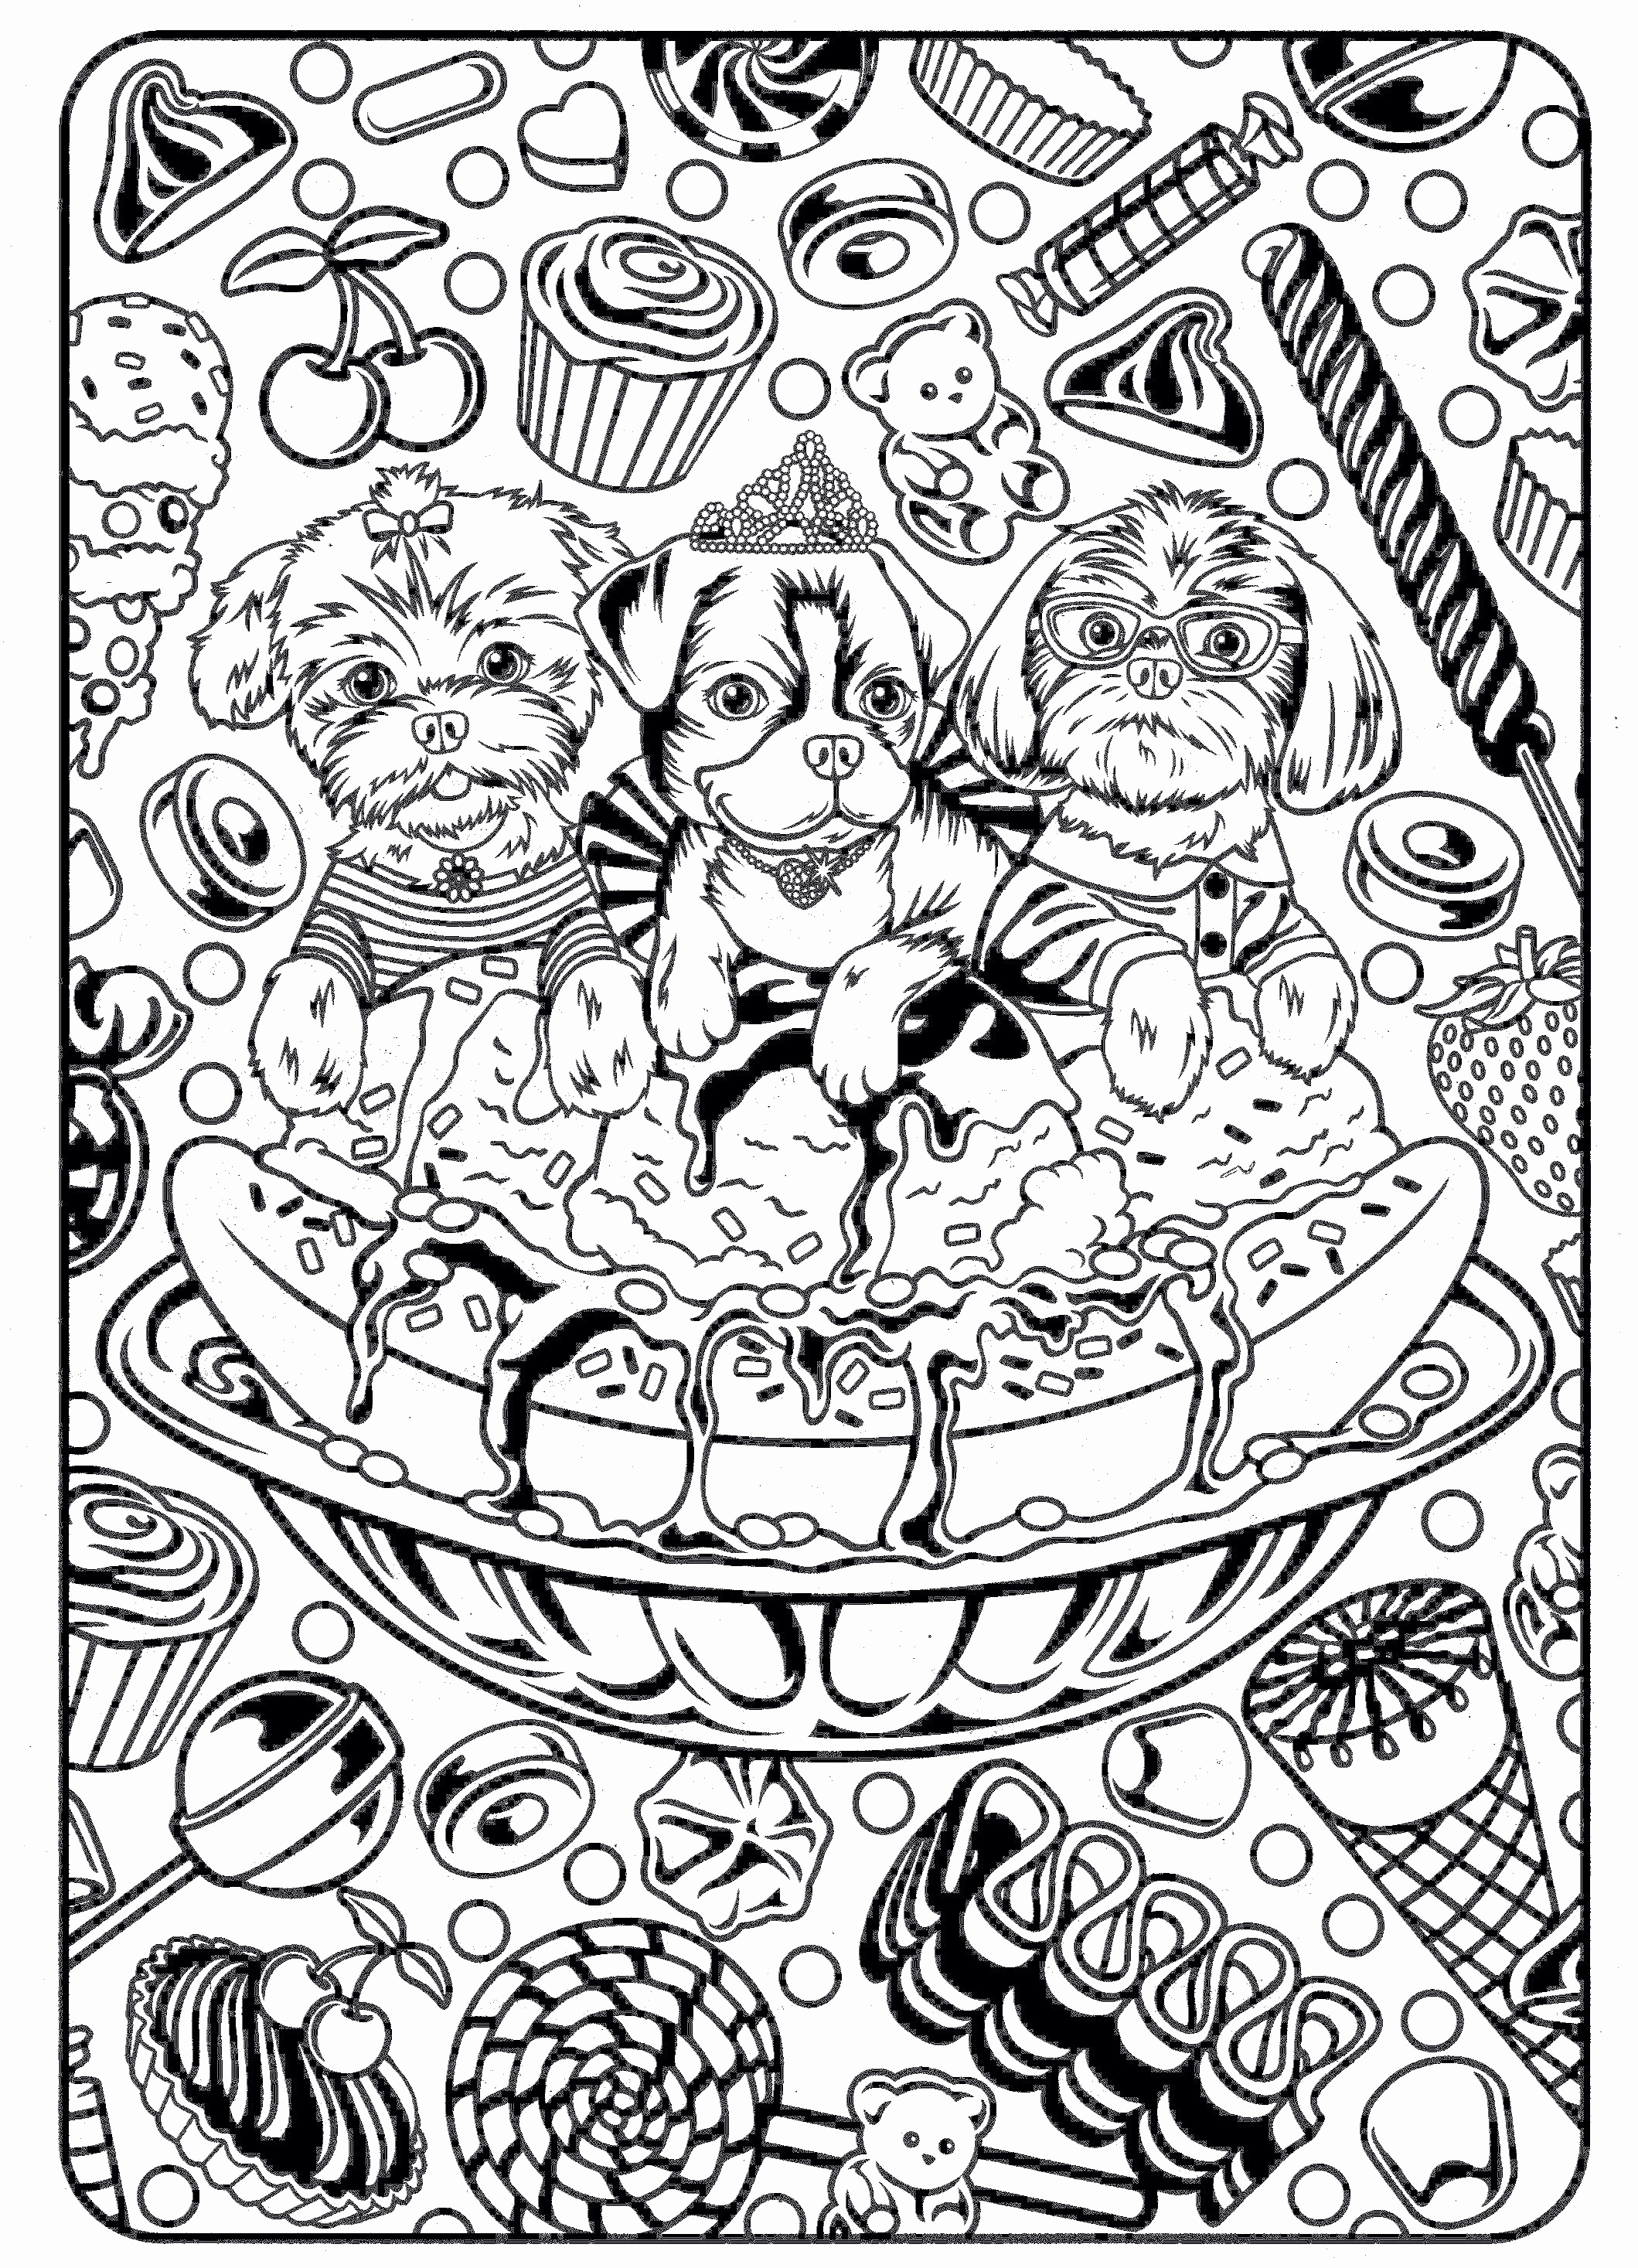 coloring pages for kidz Collection-56 Best s Coloring Pages for Children 14-o